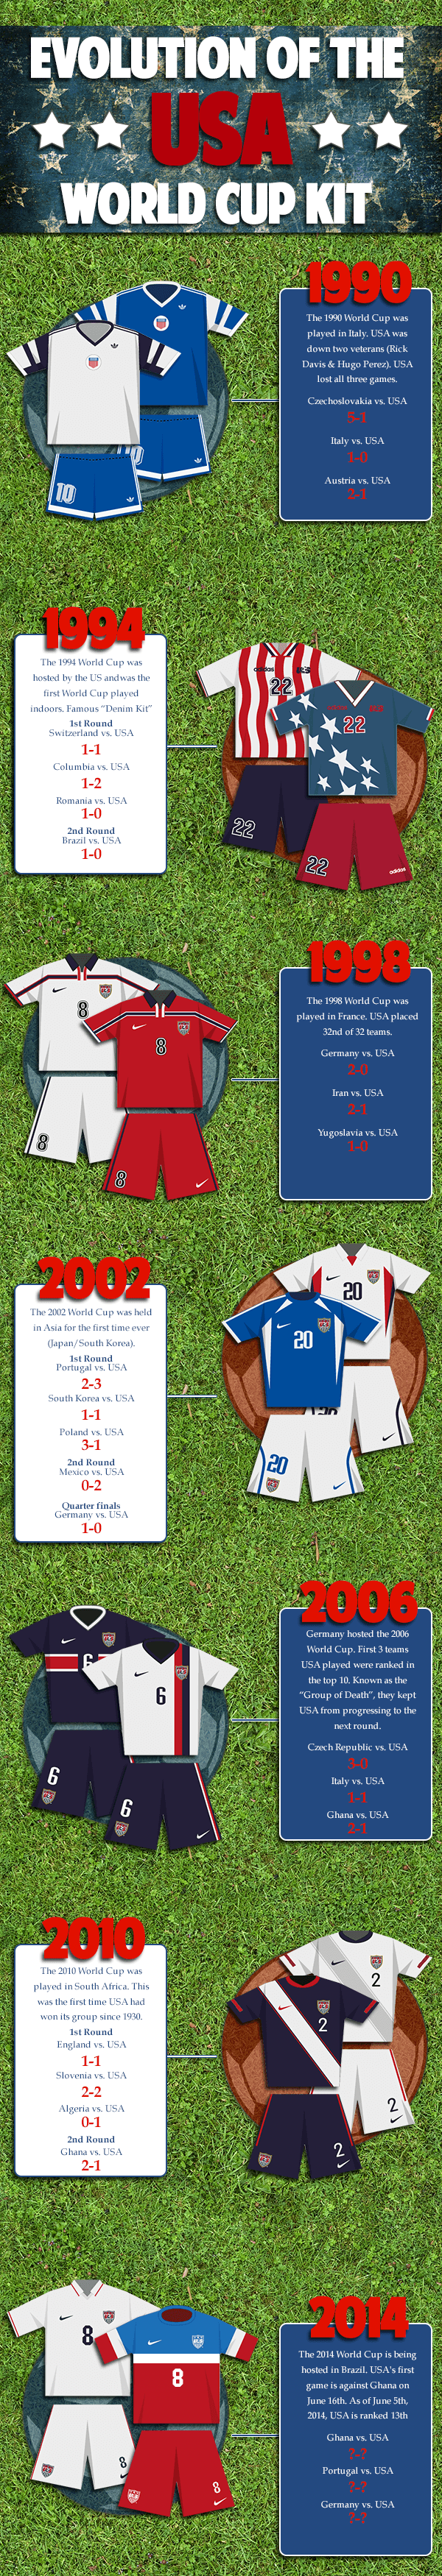 Evolution of the USA World Cup Kit